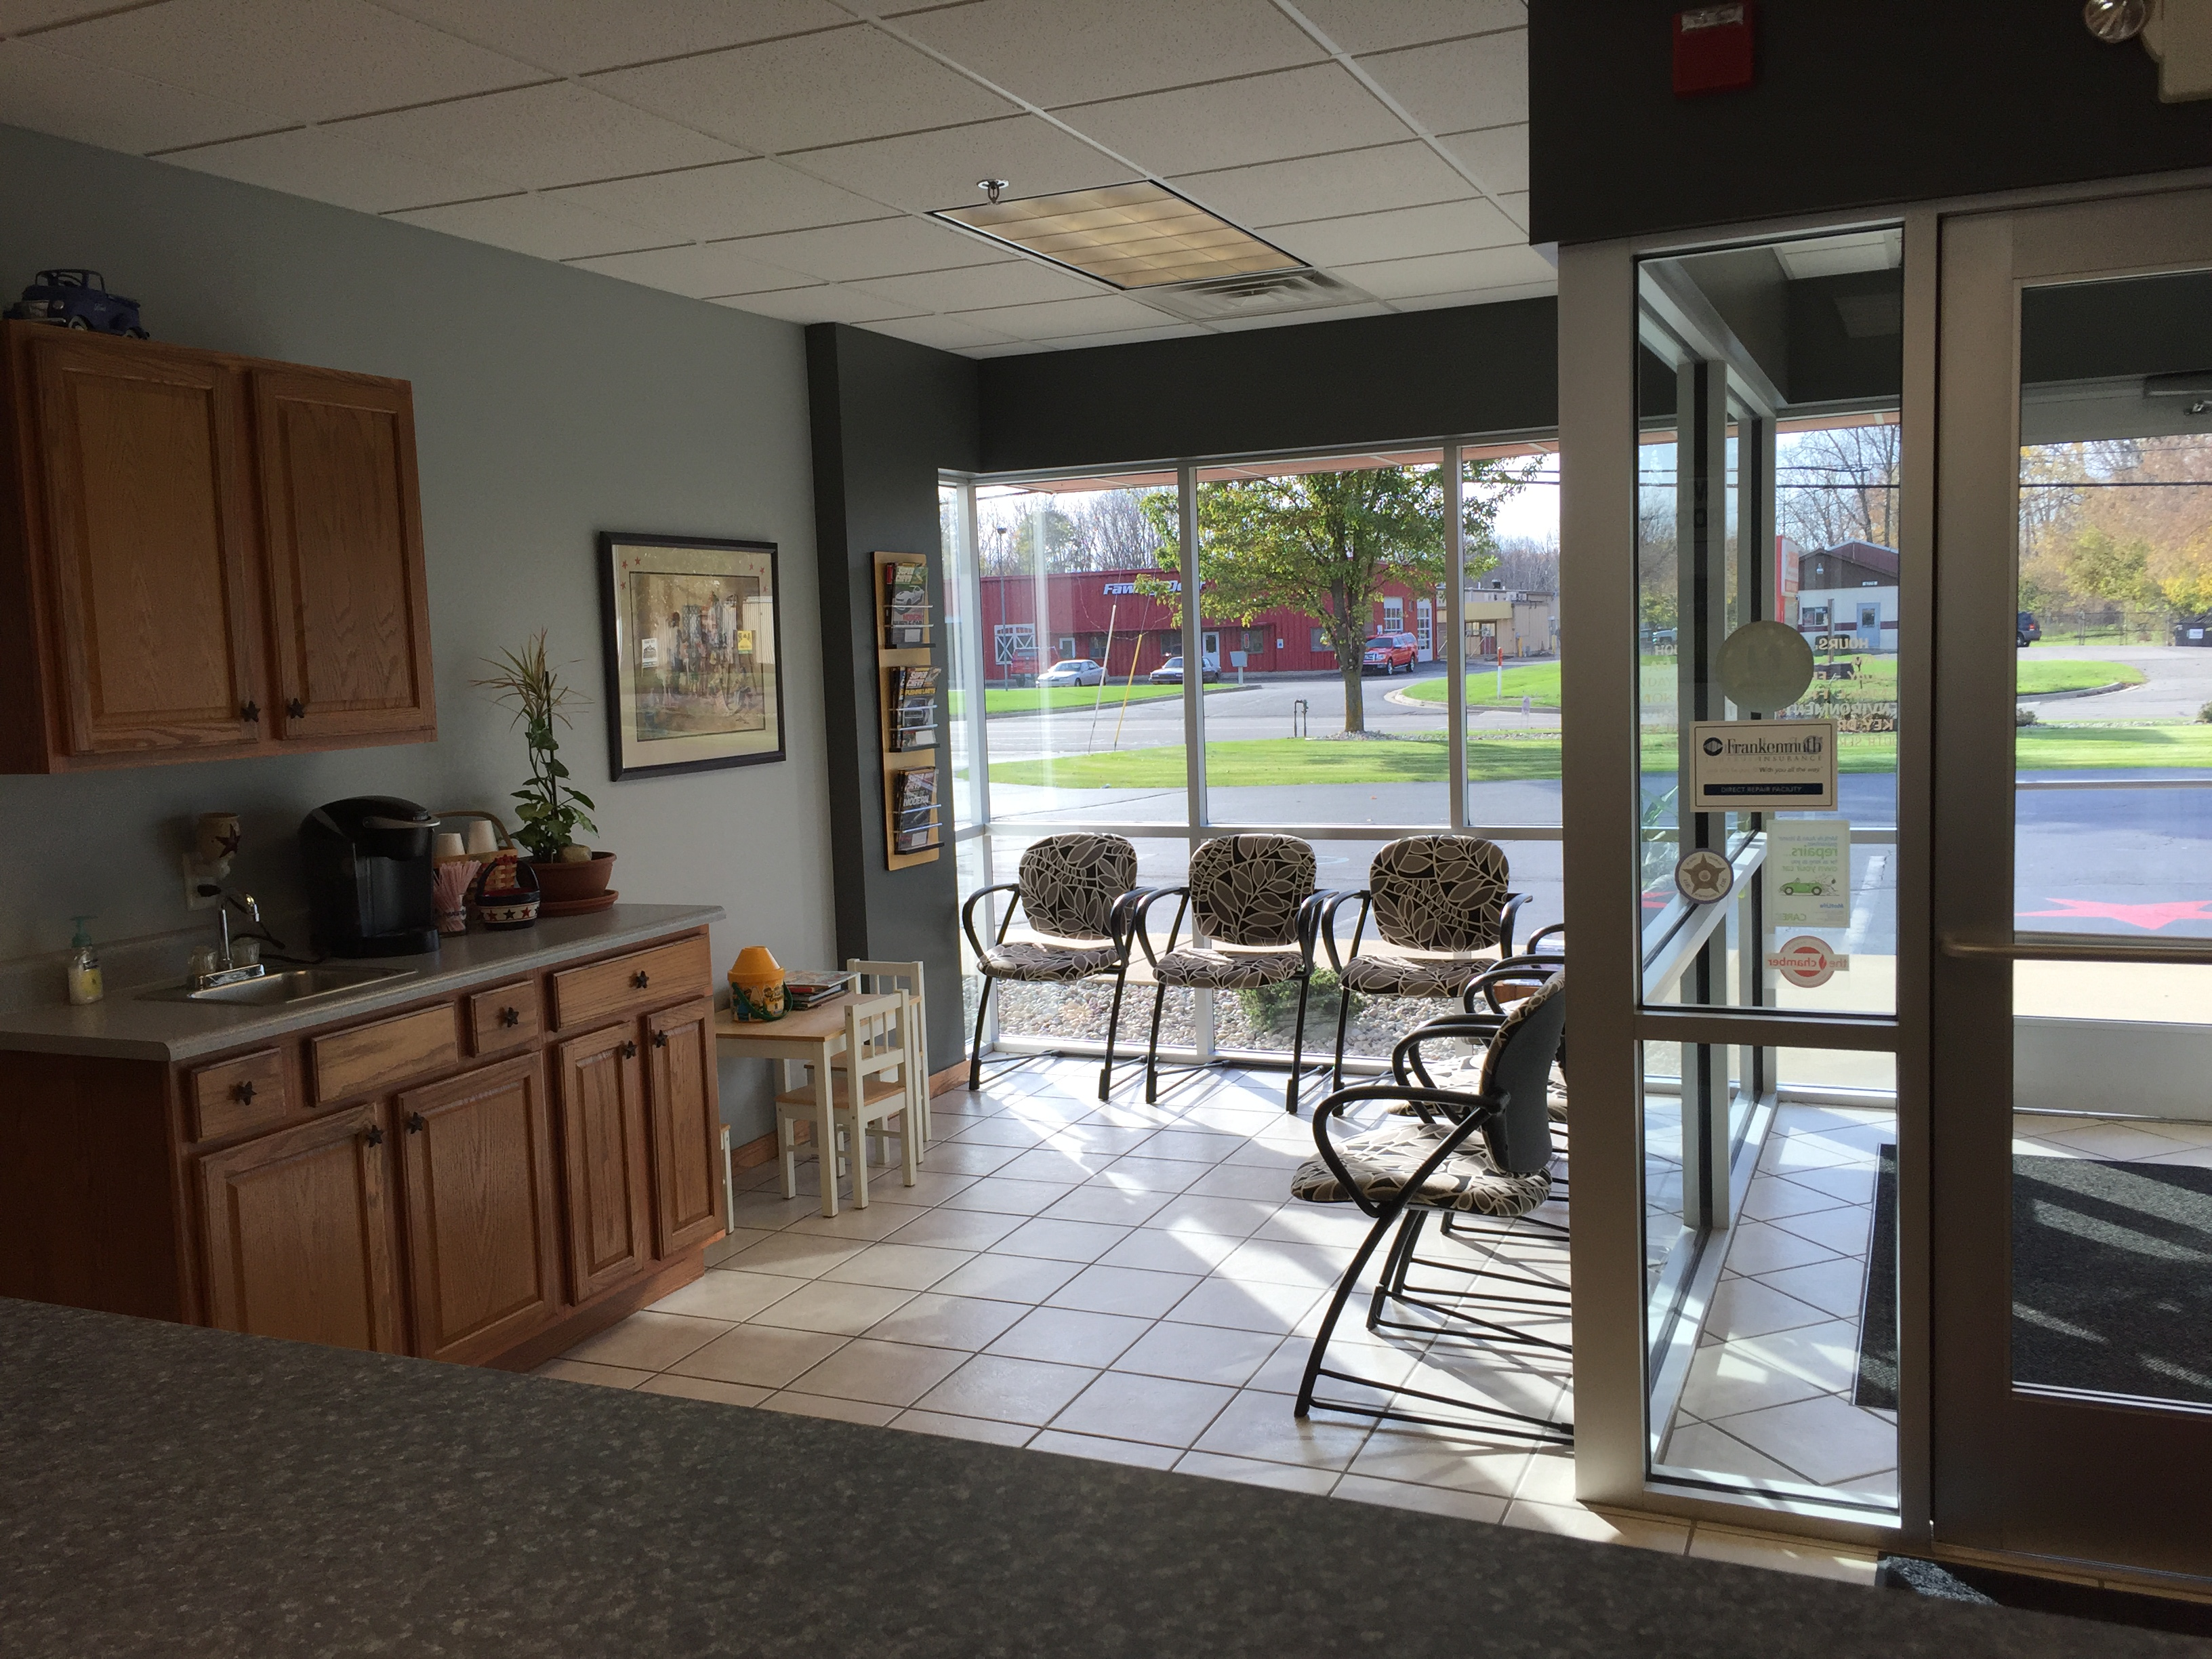 CARSTAR Portage: Customer Waiting Area